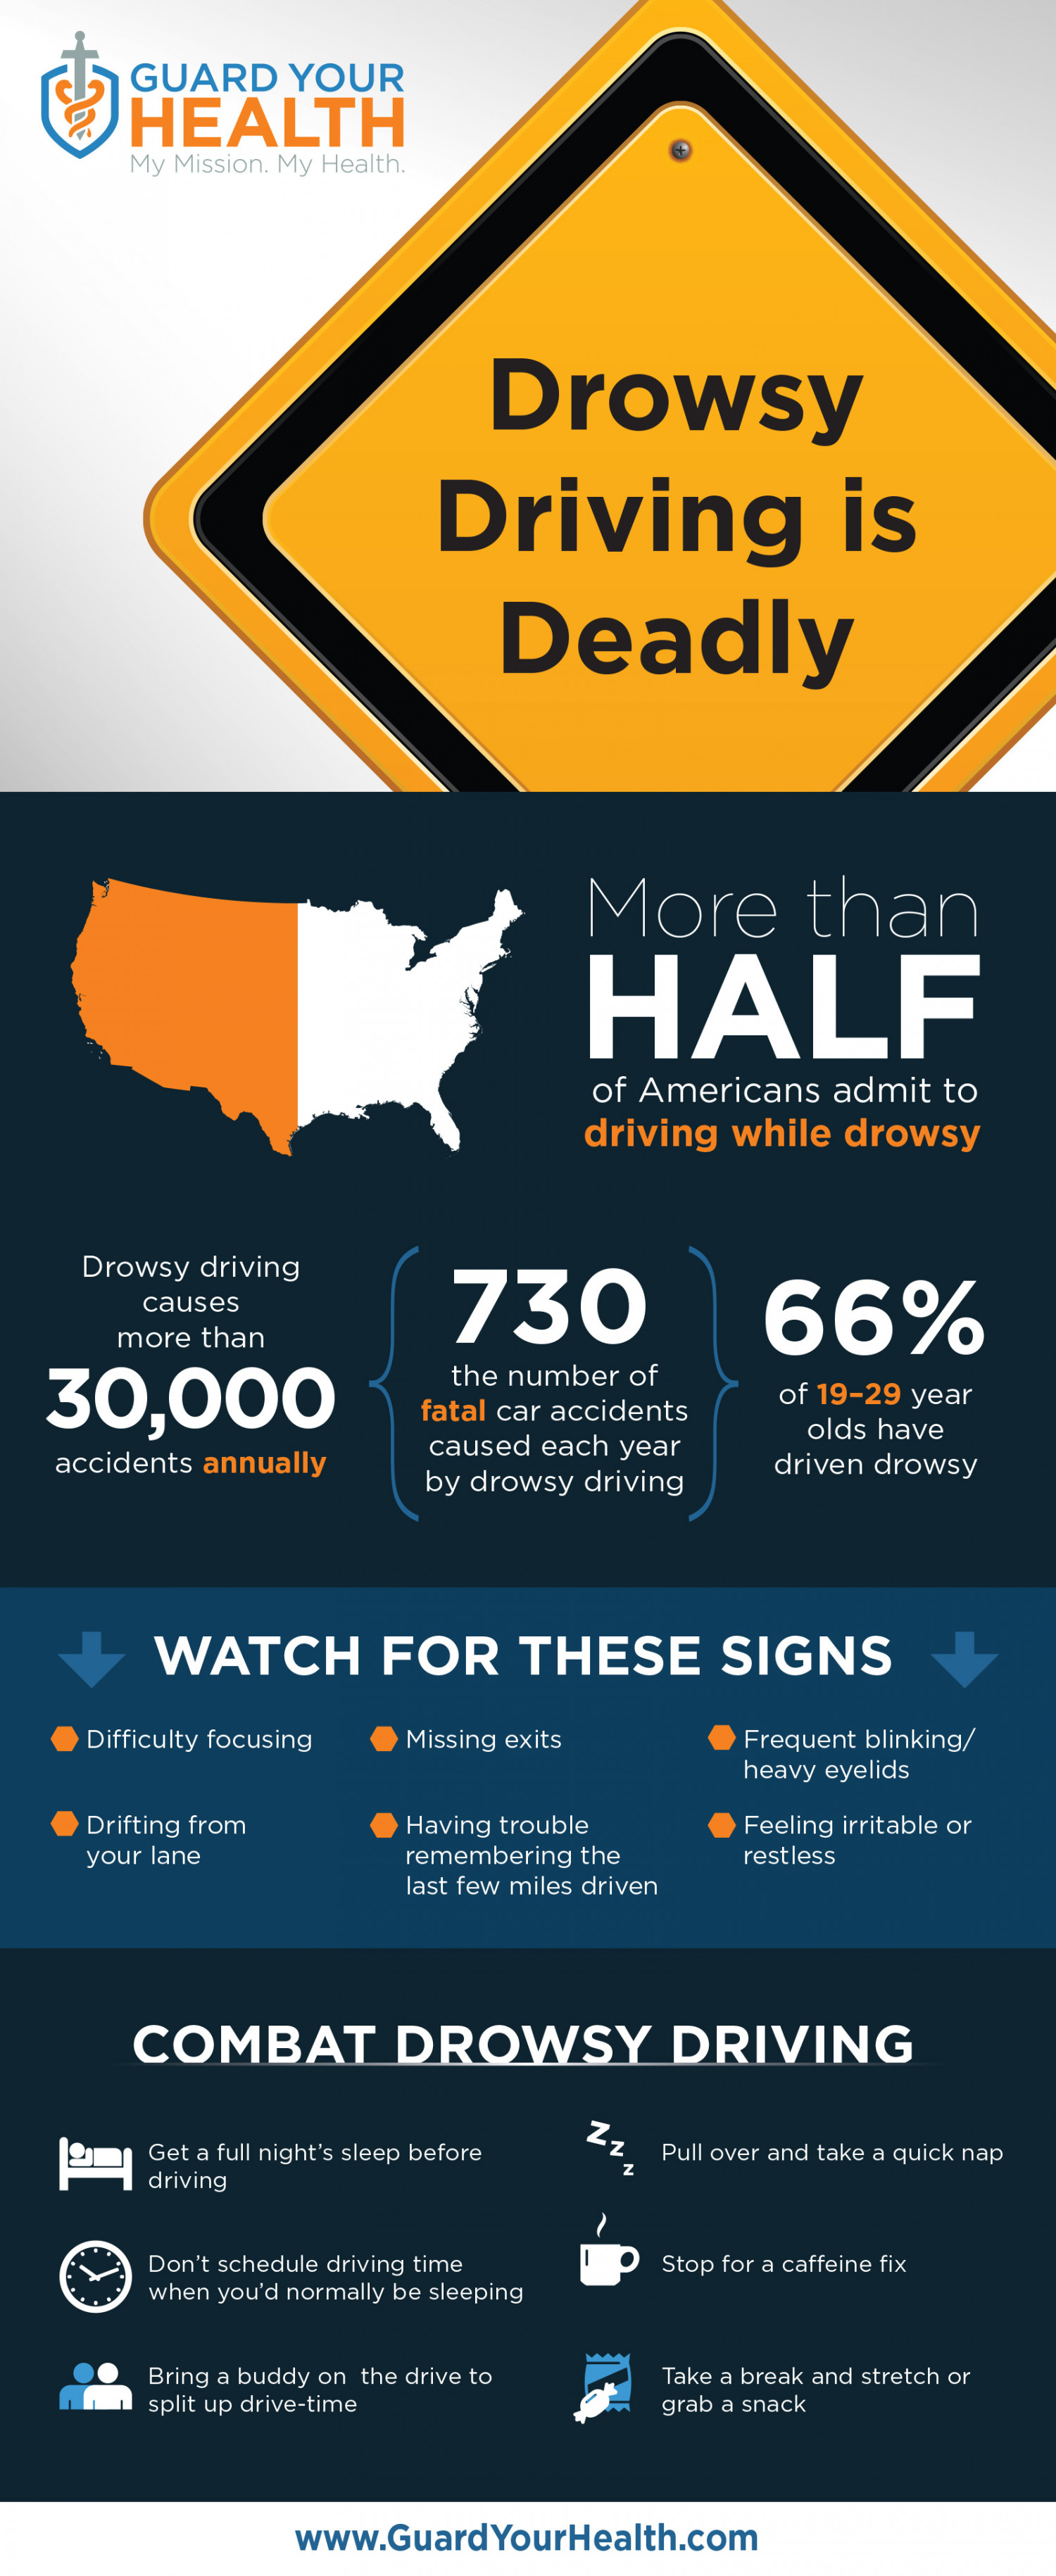 Drowsy Driving is Deadly Infographic